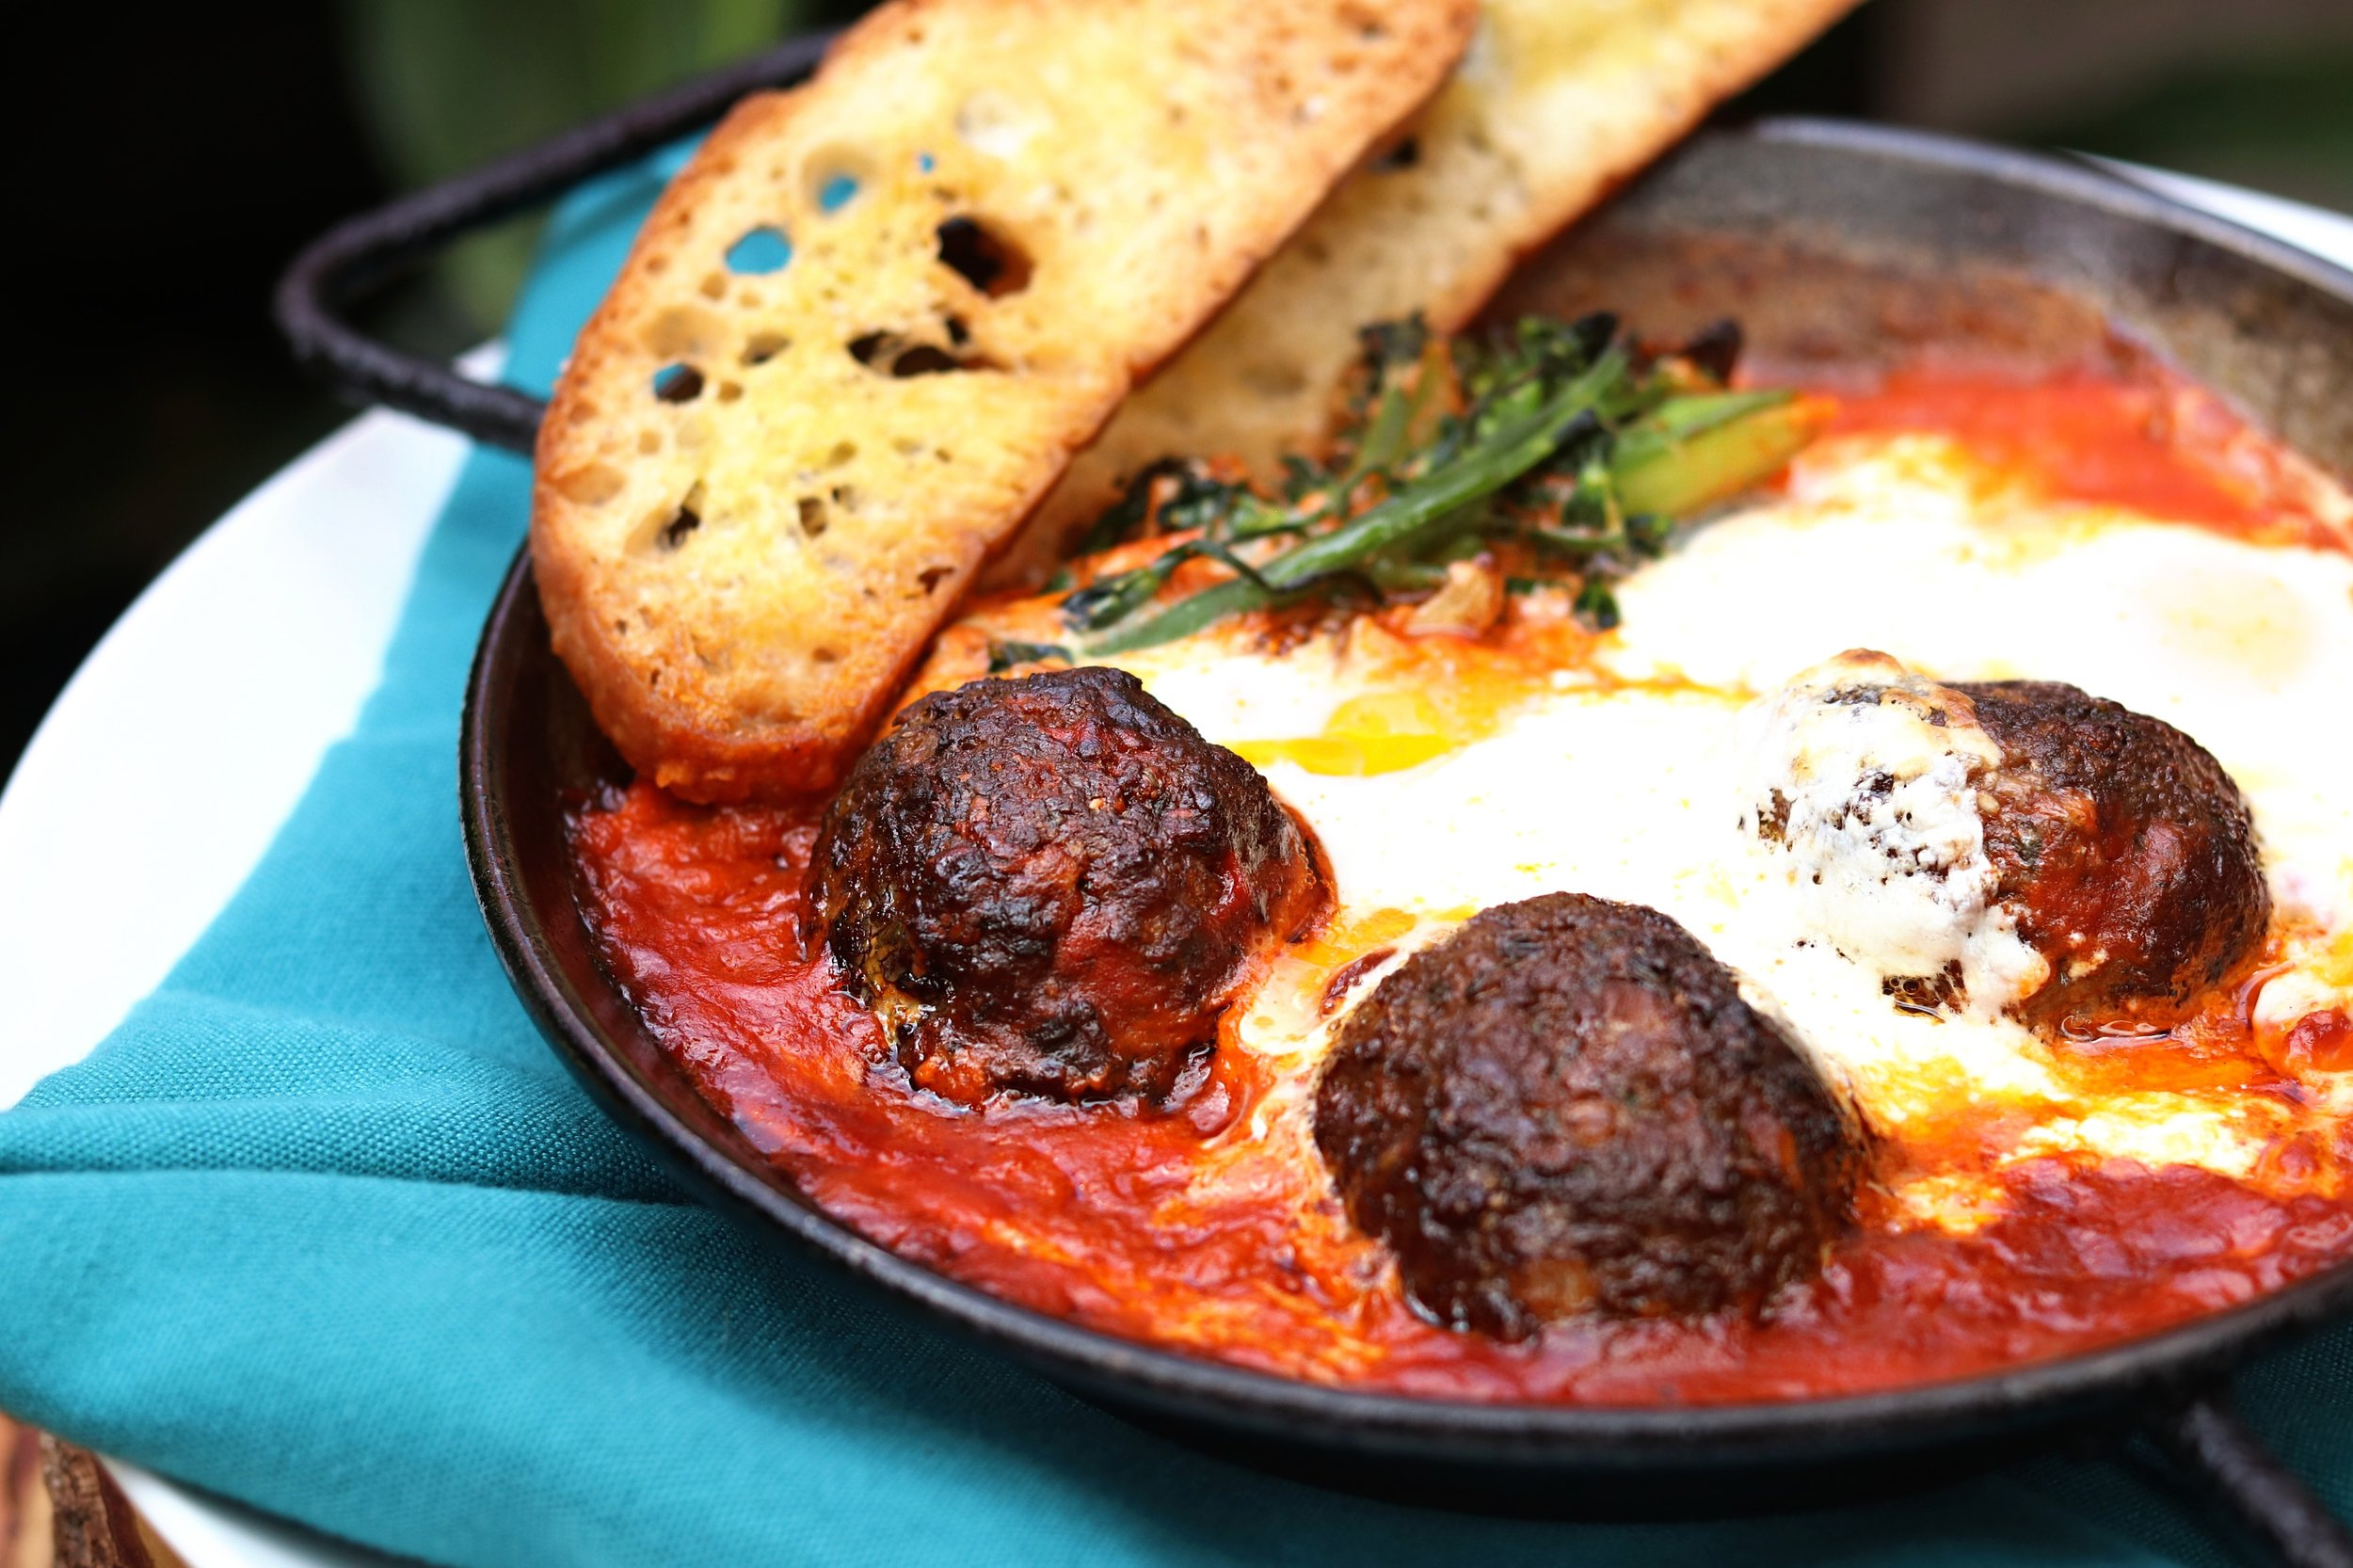 no wait brunch san diego insideout lamb meatballs baked eggs brunch san diego hillcrest memorial day weekend brunchfaced bloody mary obsessed.jpg